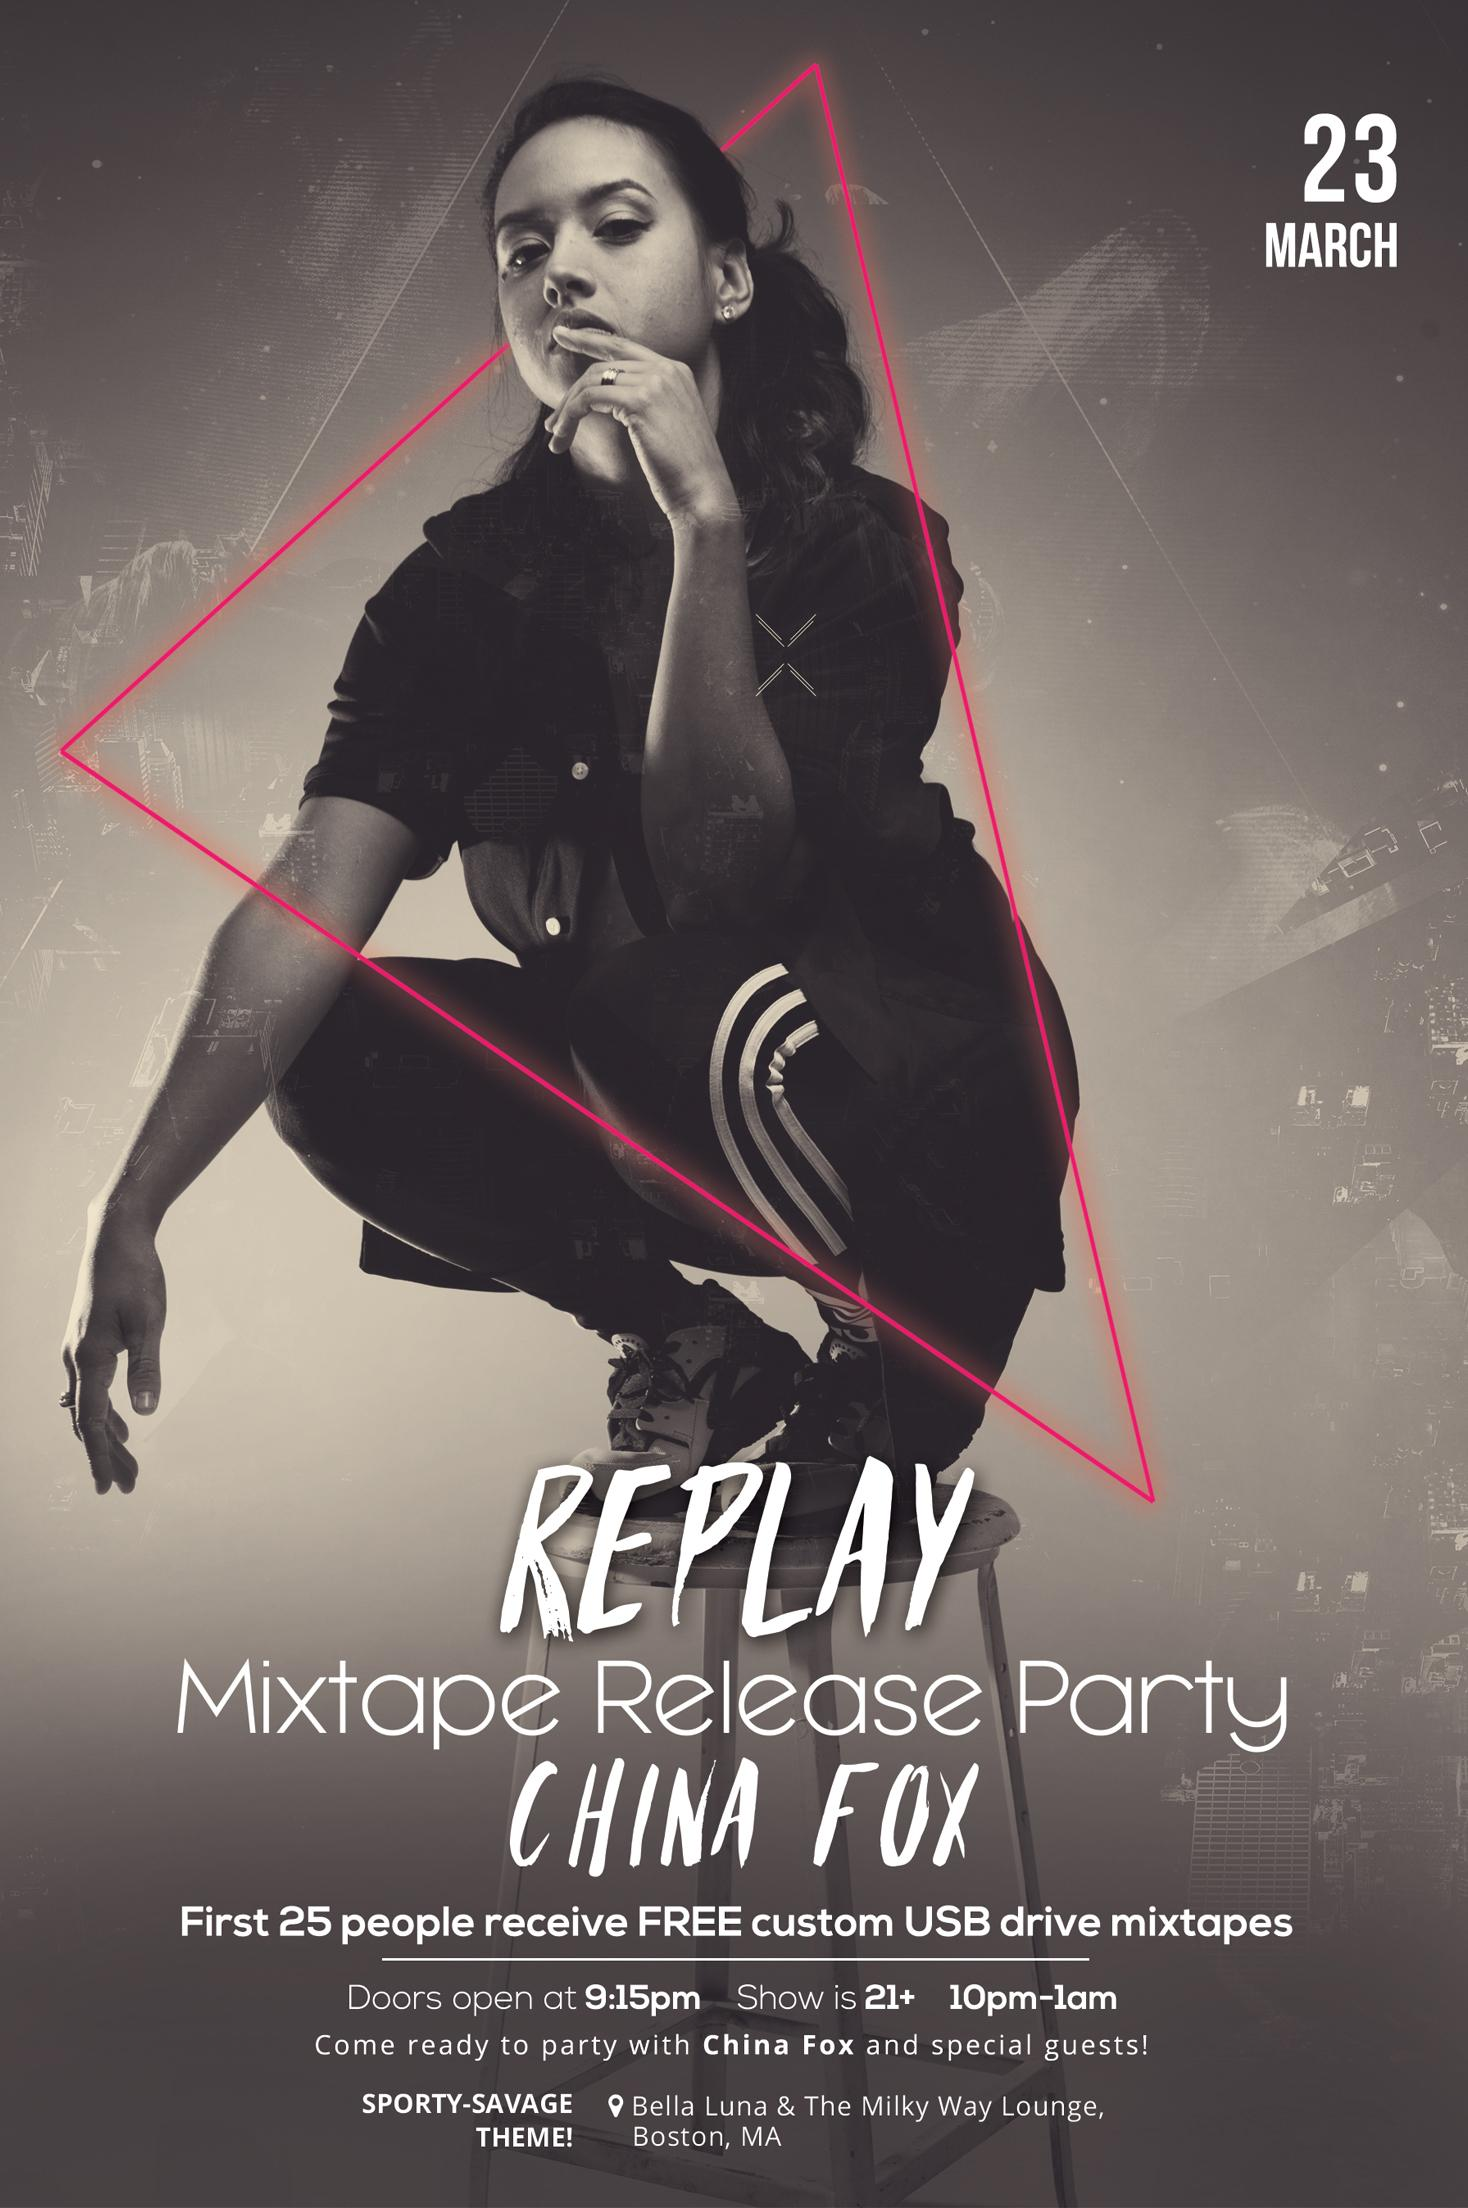 Replay Mixtape Release Party